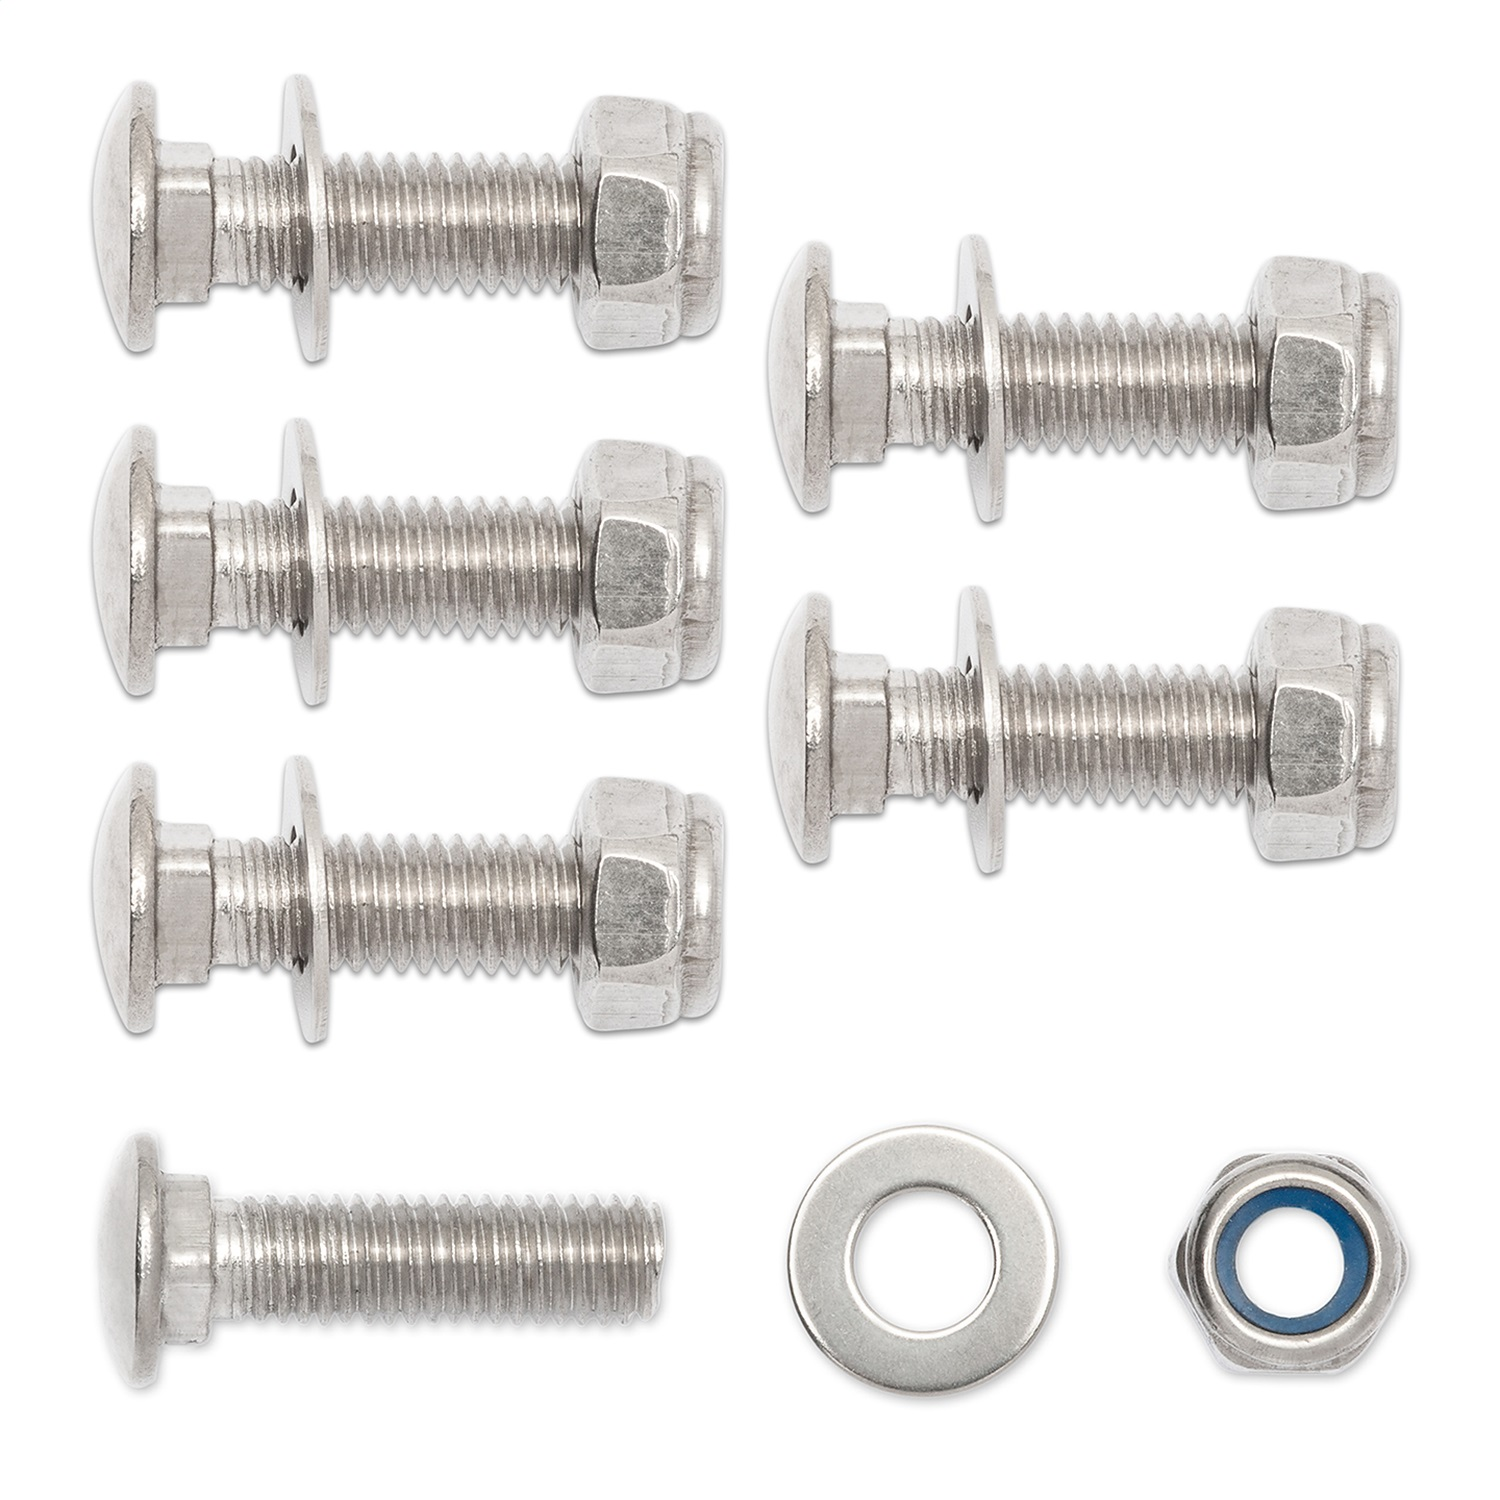 Rock Tamers RT056 Rock Tamers Replacement Parts